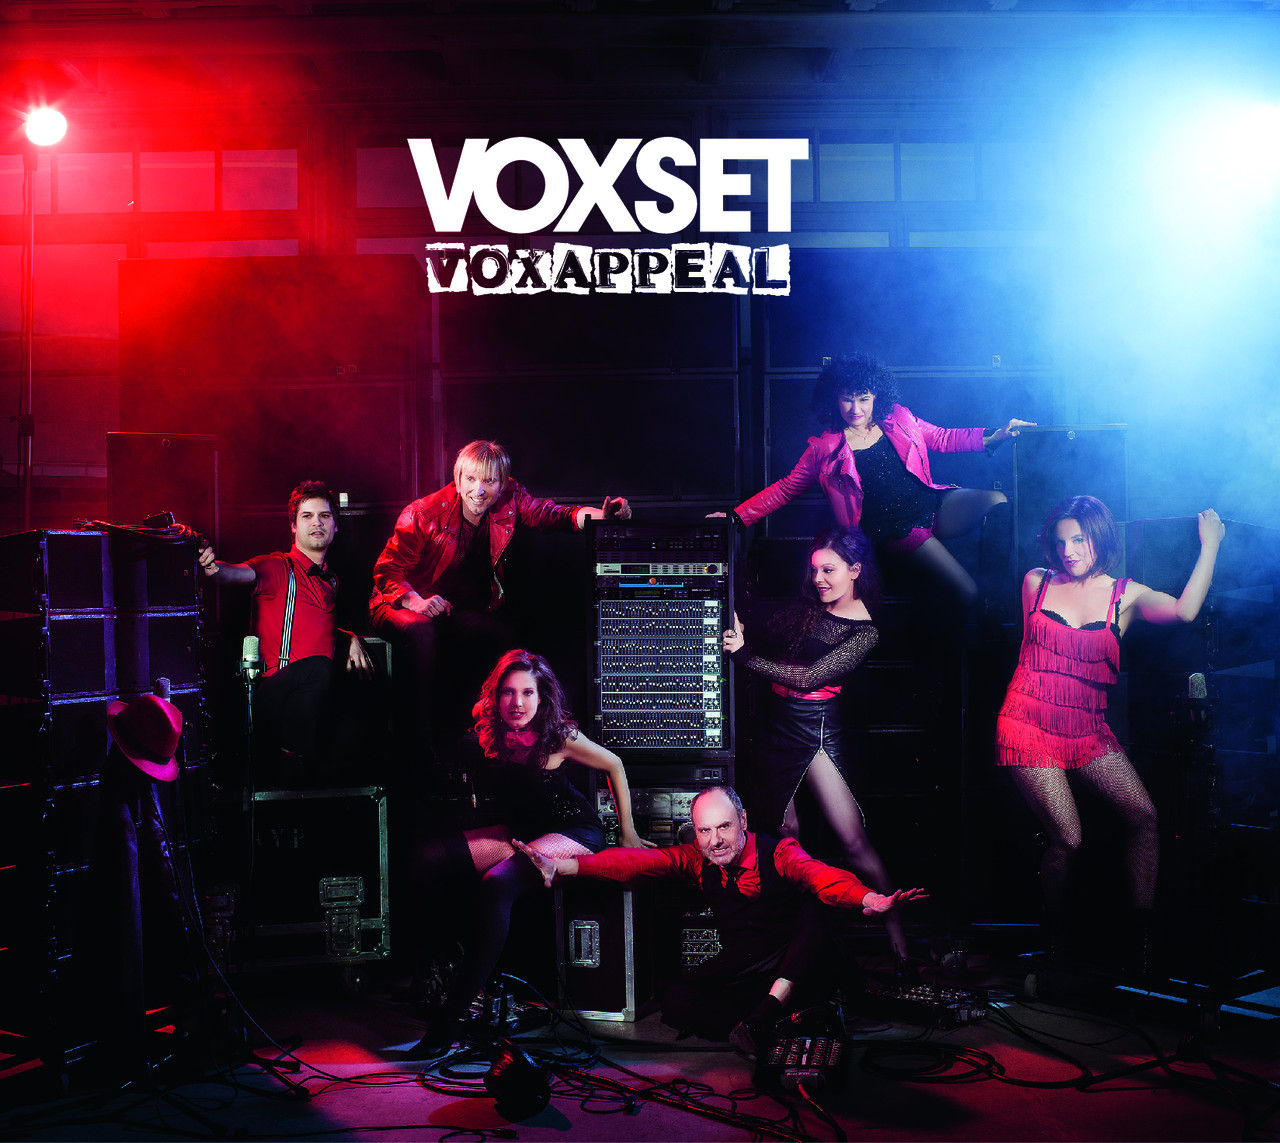 Couverture CD de Voxset shooting au studio photo location the place